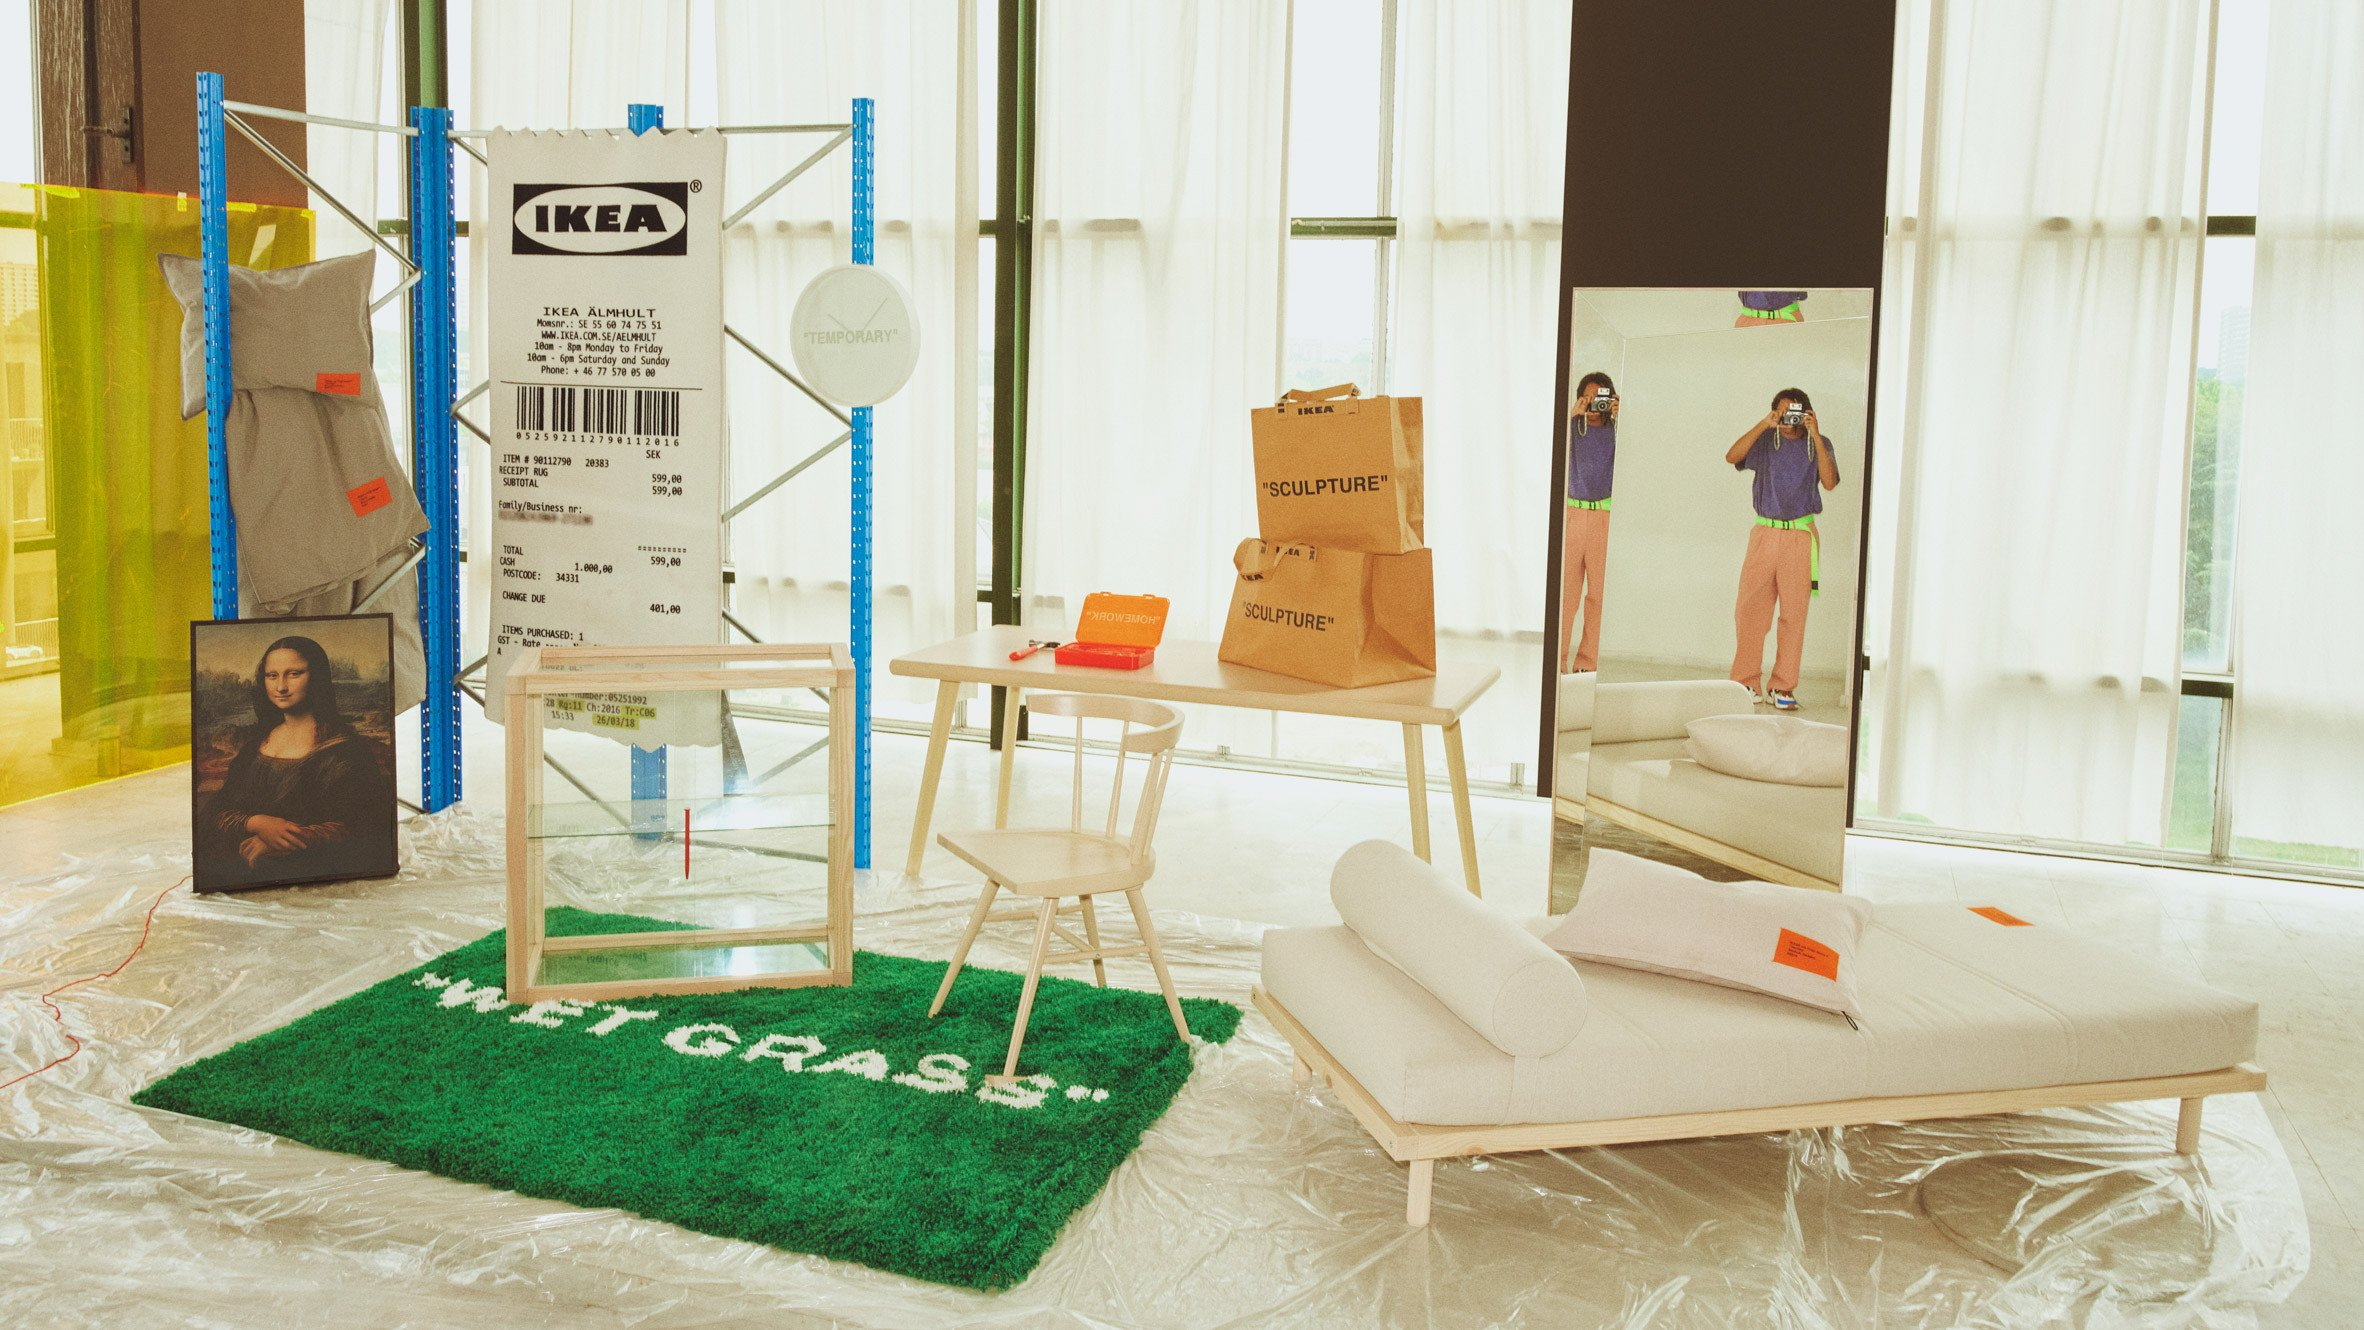 Ikea Bedroom Set Queen Inspirational Virgil Abloh Reveals Full Ikea Collection Ahead Of Us Launch